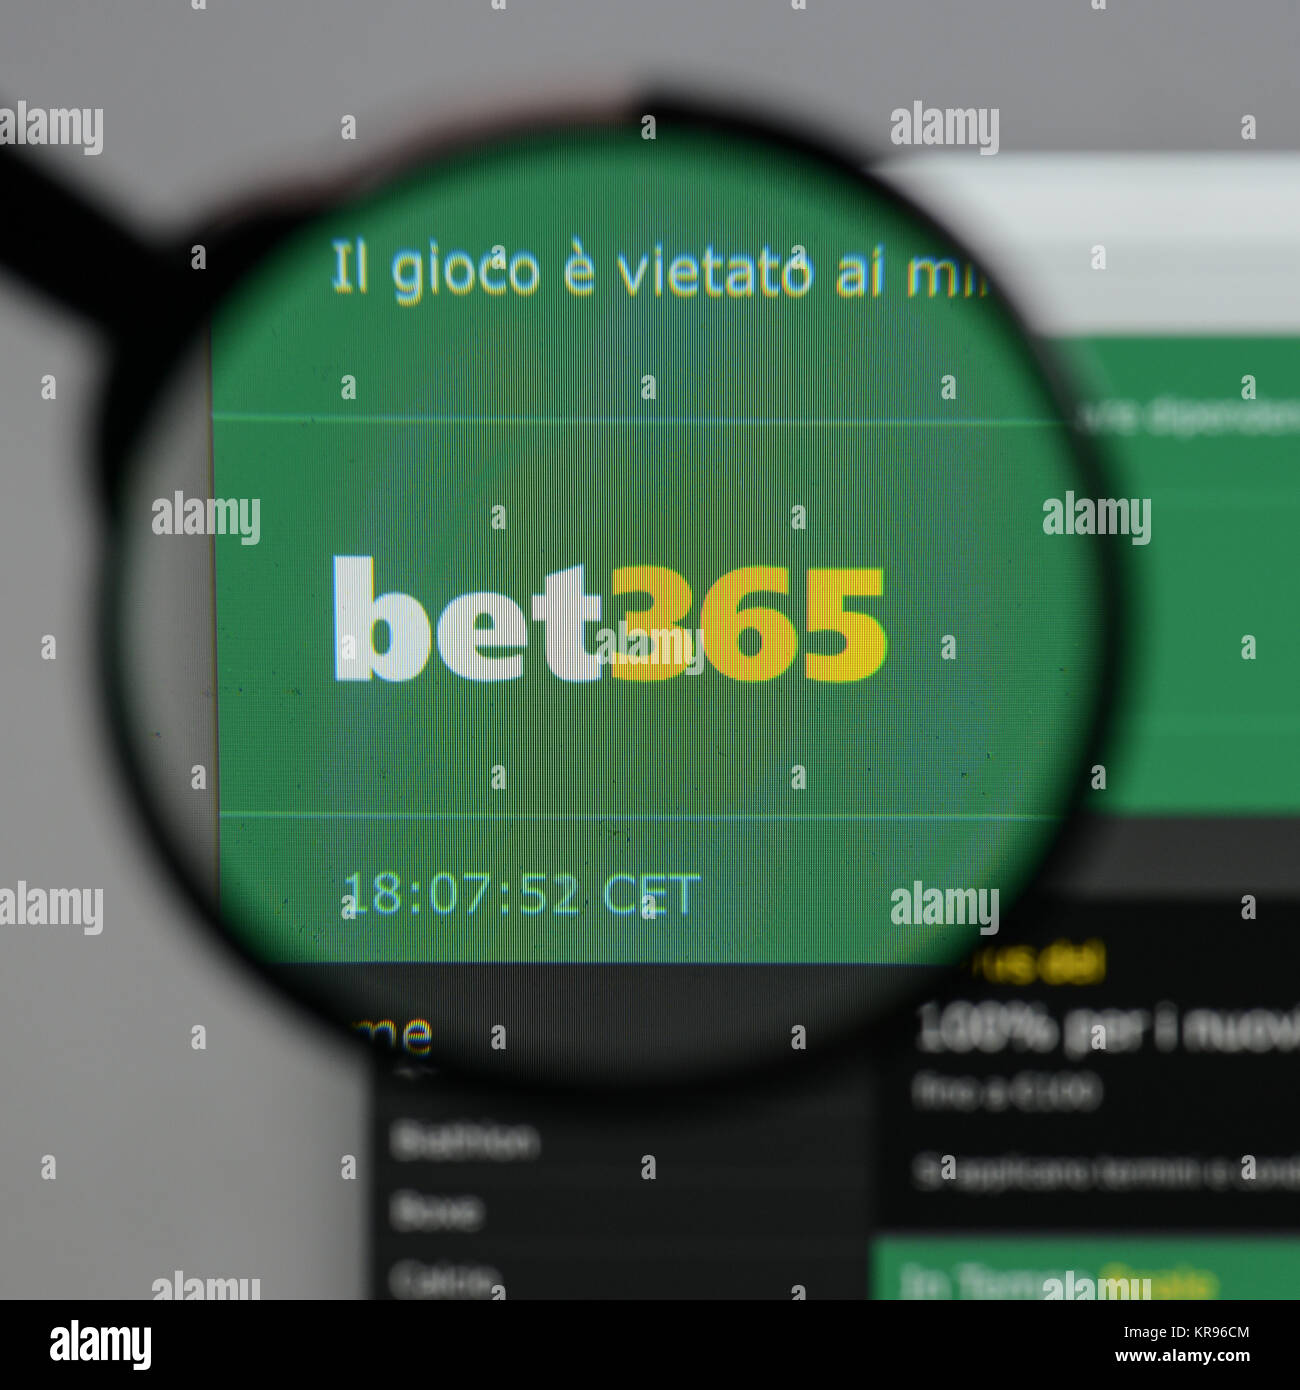 Italia betting 365 online binary options pro trader mike